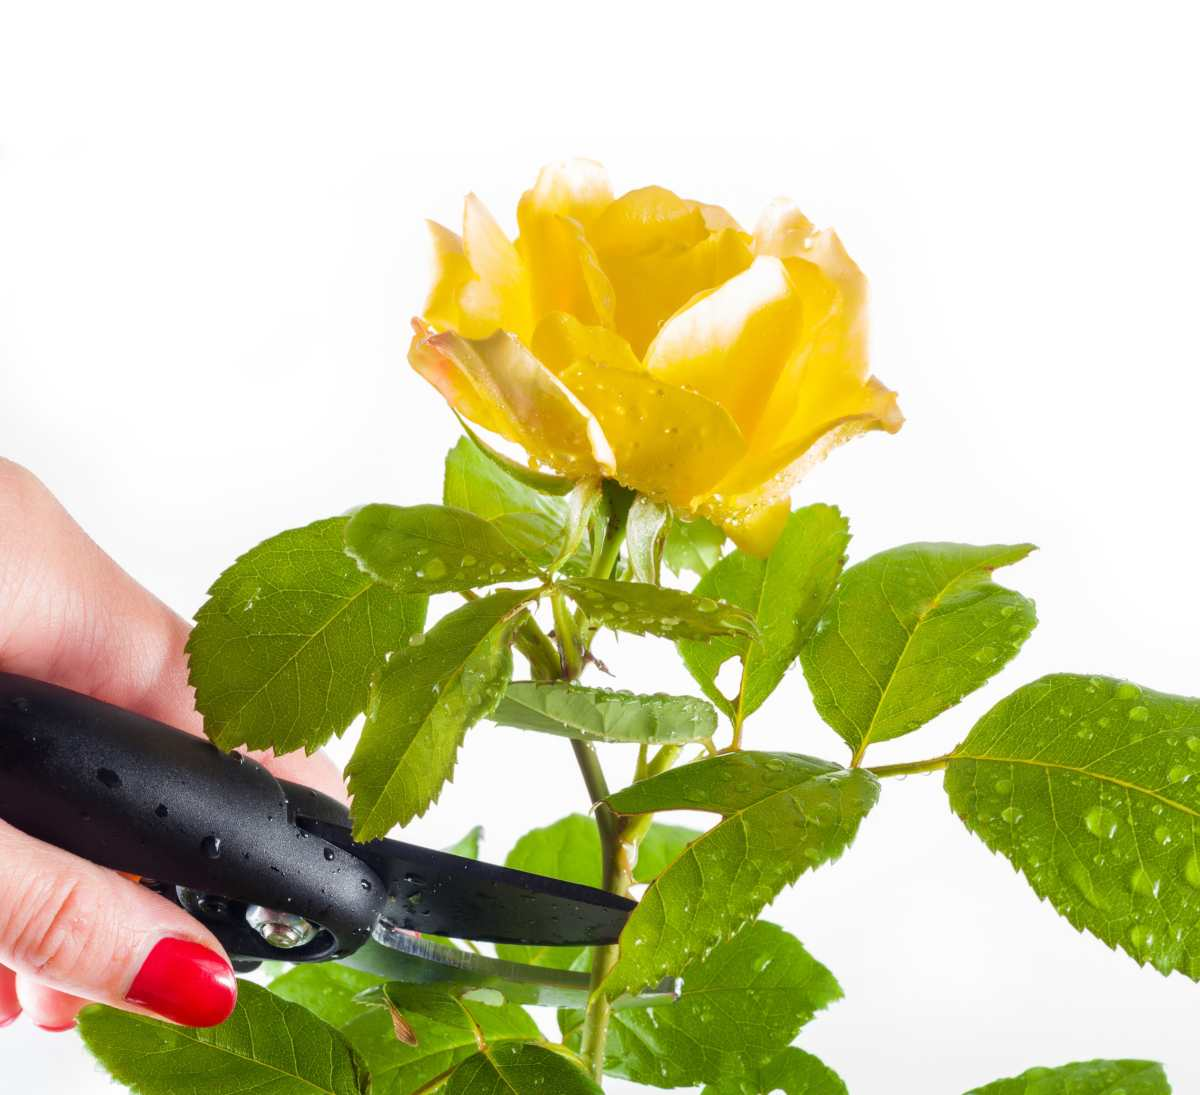 Yellow rose cut and pruned with a secateur